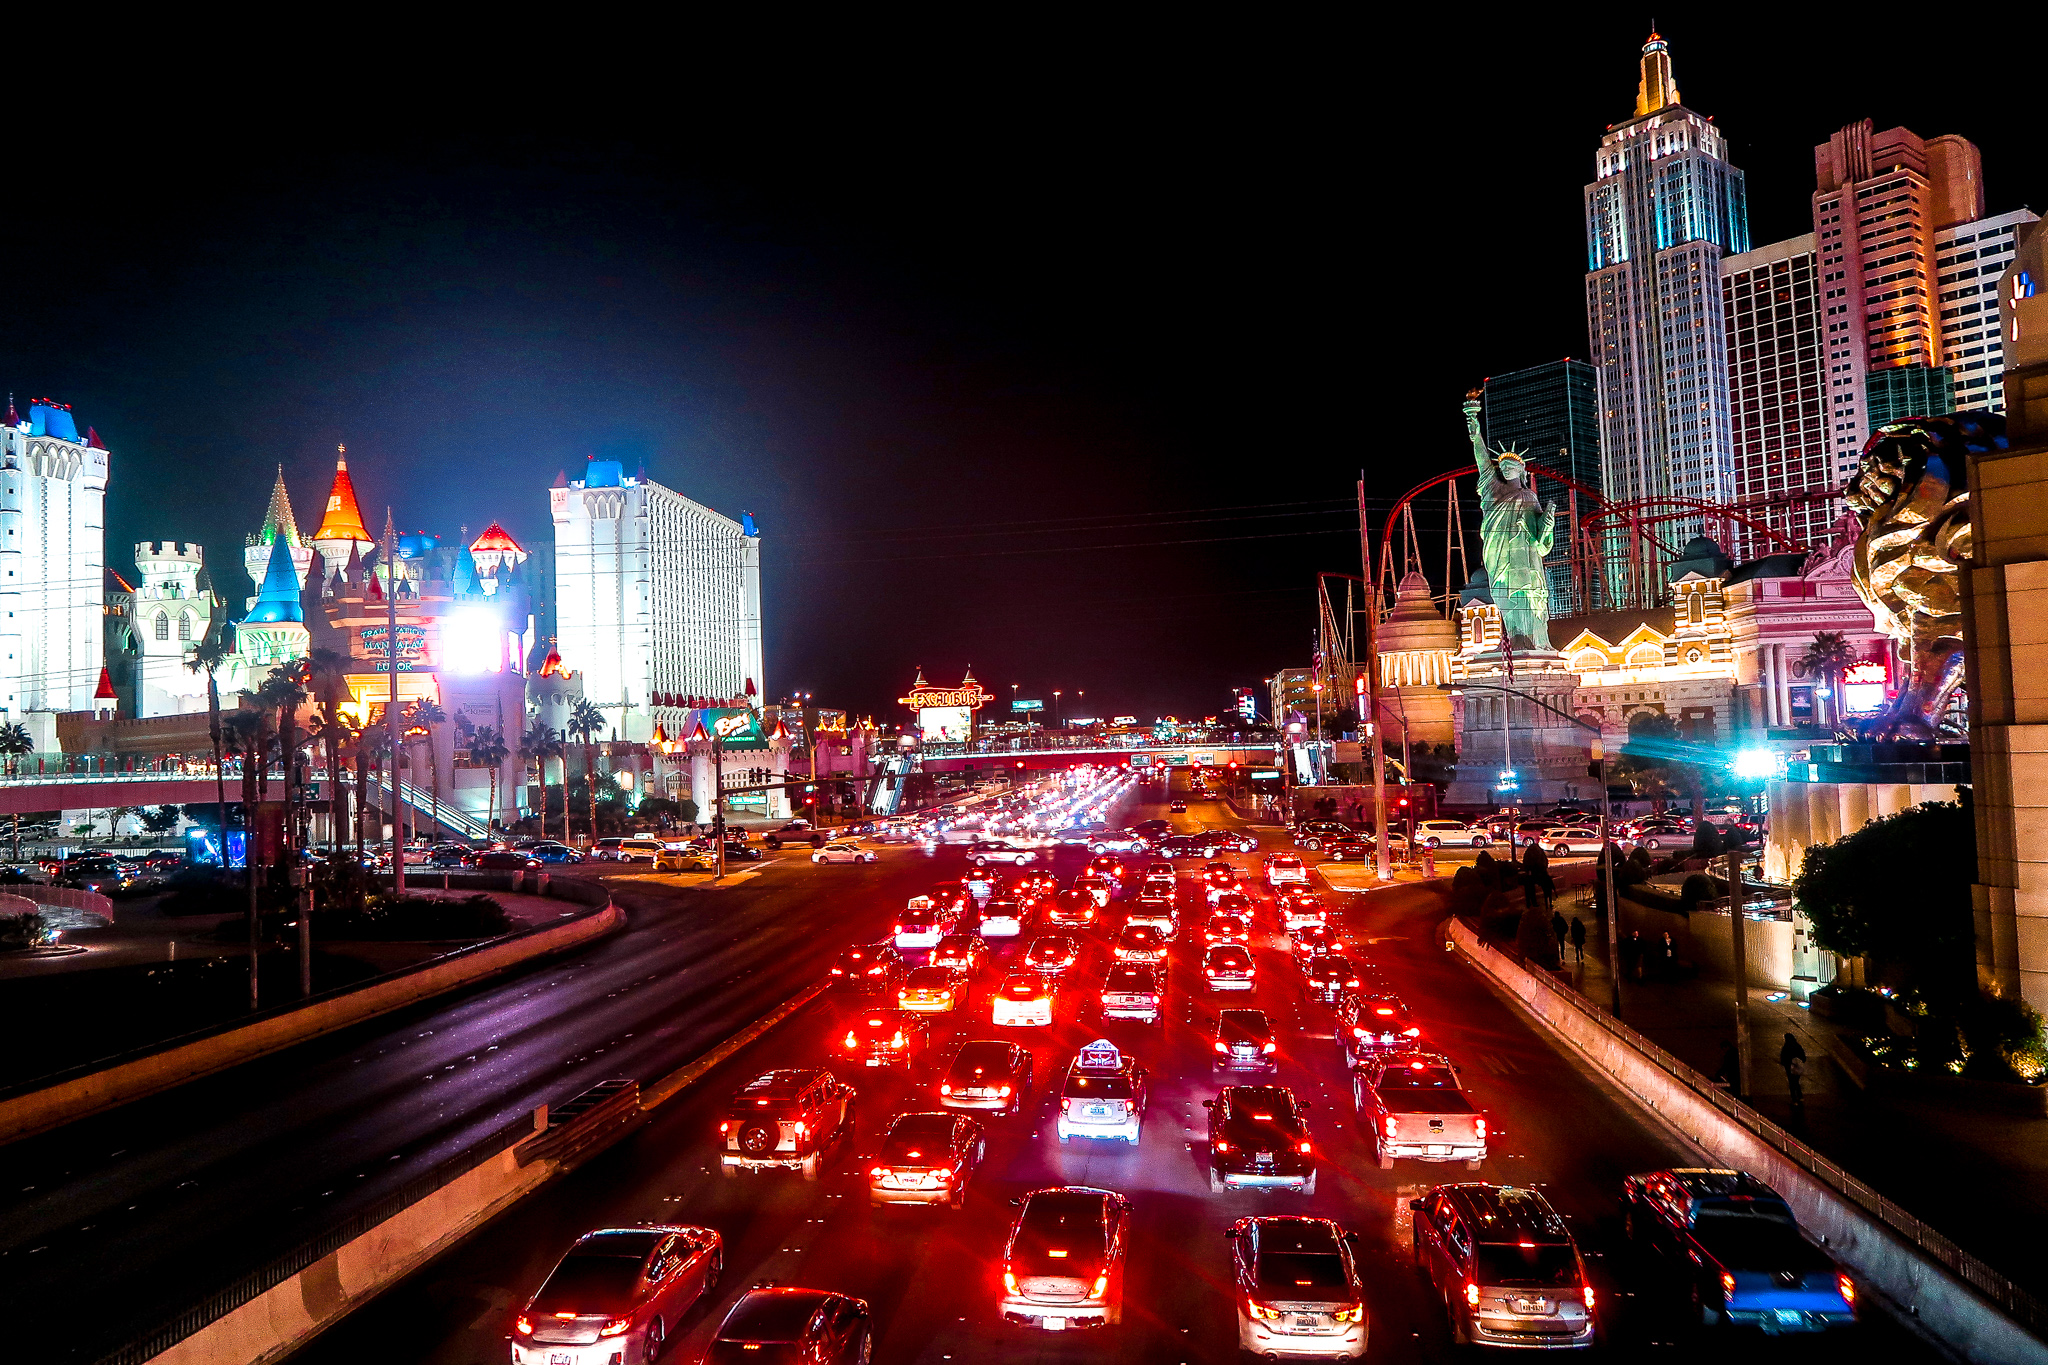 Traffic NYNY Excalibur | 7 Night Itinerary for Las Vegas | If you're looking to plan things to do in Vegas here's what we got up to on our 6th visit | Travel Tips | Elle Blonde Luxury Lifestyle Destination Blog